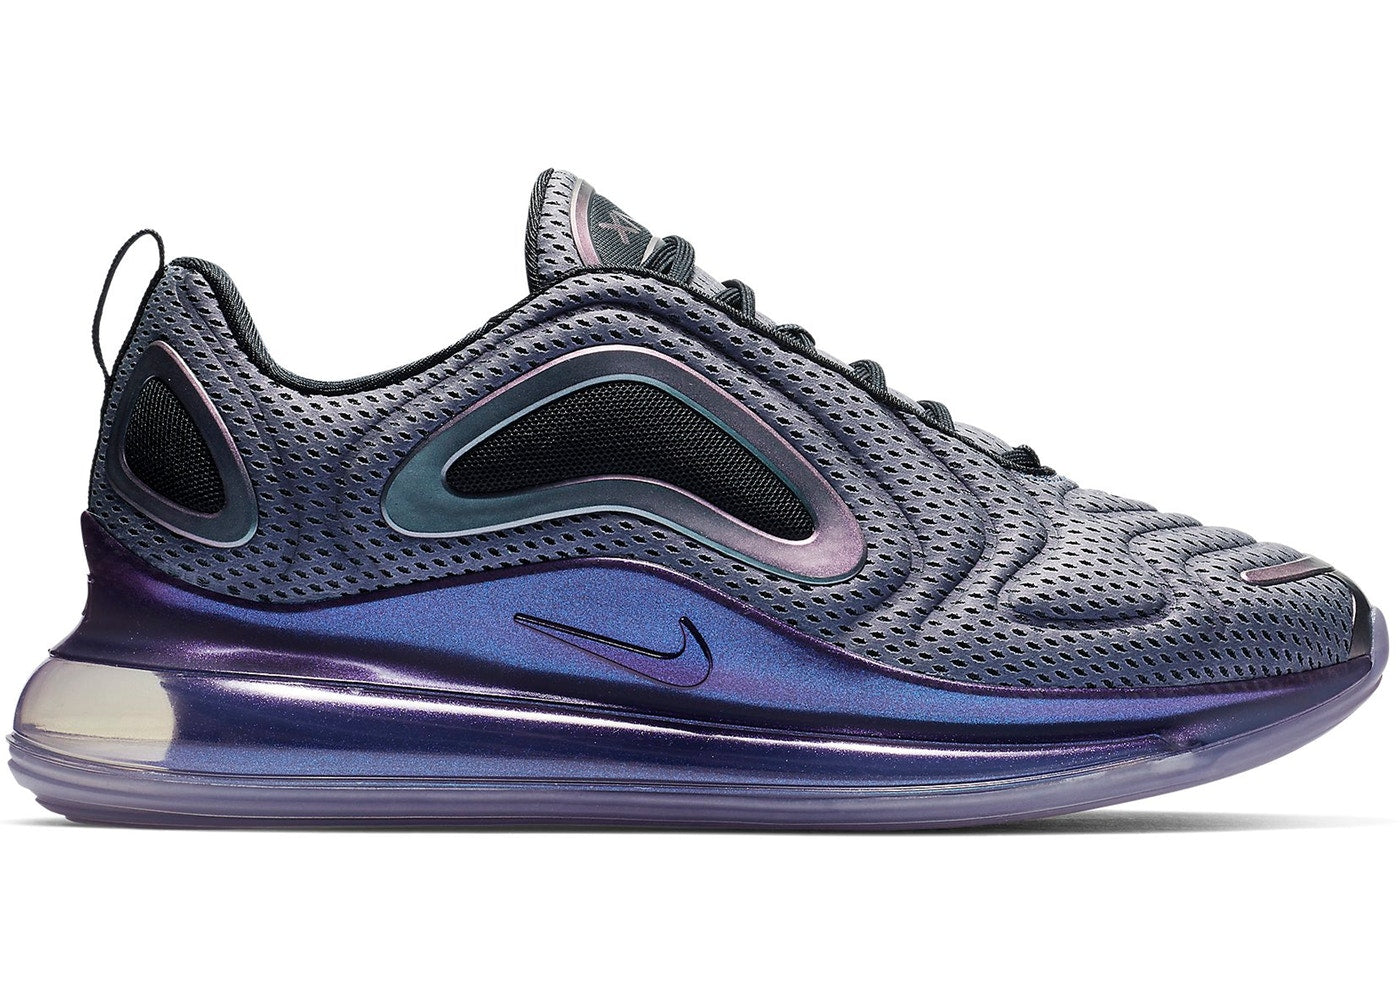 Air Max 720 'Aurora Borealis' - leaders1354